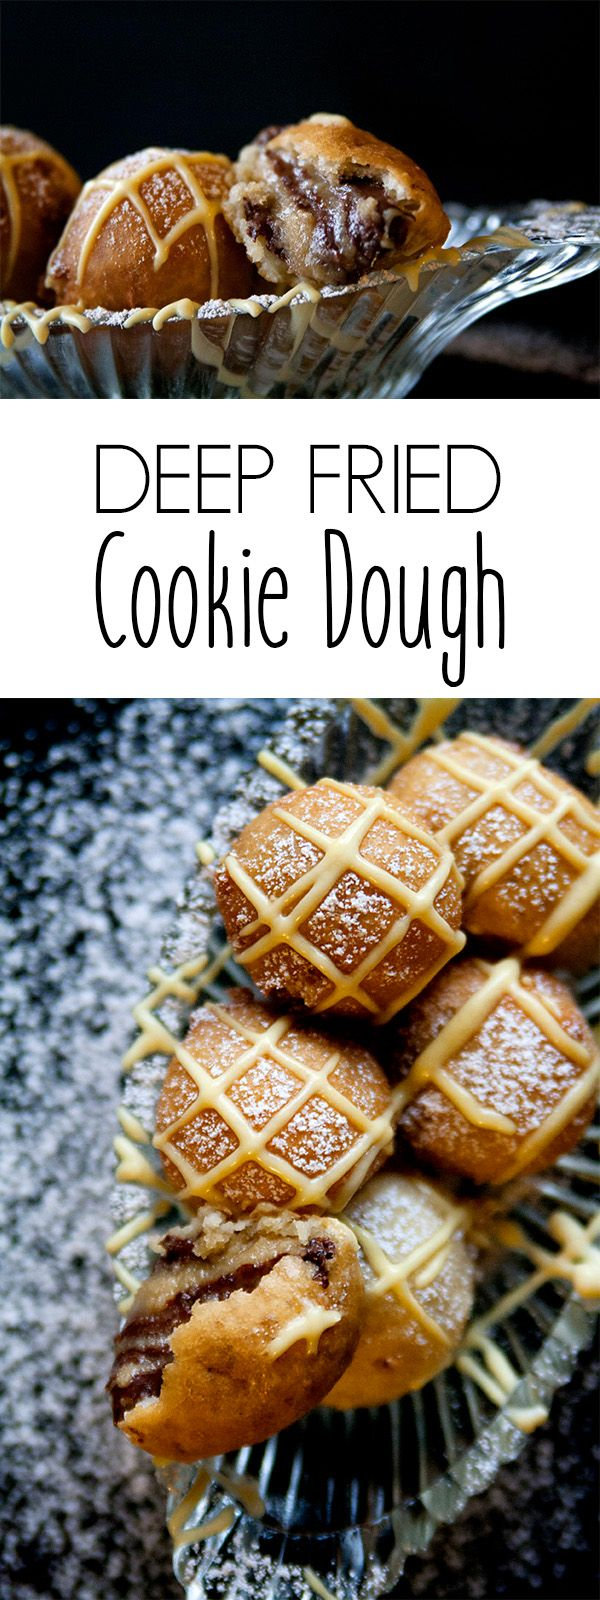 Kosher recipes | Chanukah recipes | Hanukkah recipes | As if the holidays weren't hard enough, these deep fried chocolate chip cookie dough balls with bourbon cream sauce are sinfully delicious. Perfect for any chanukah celebration or add it to your Christmas cookie tradition.